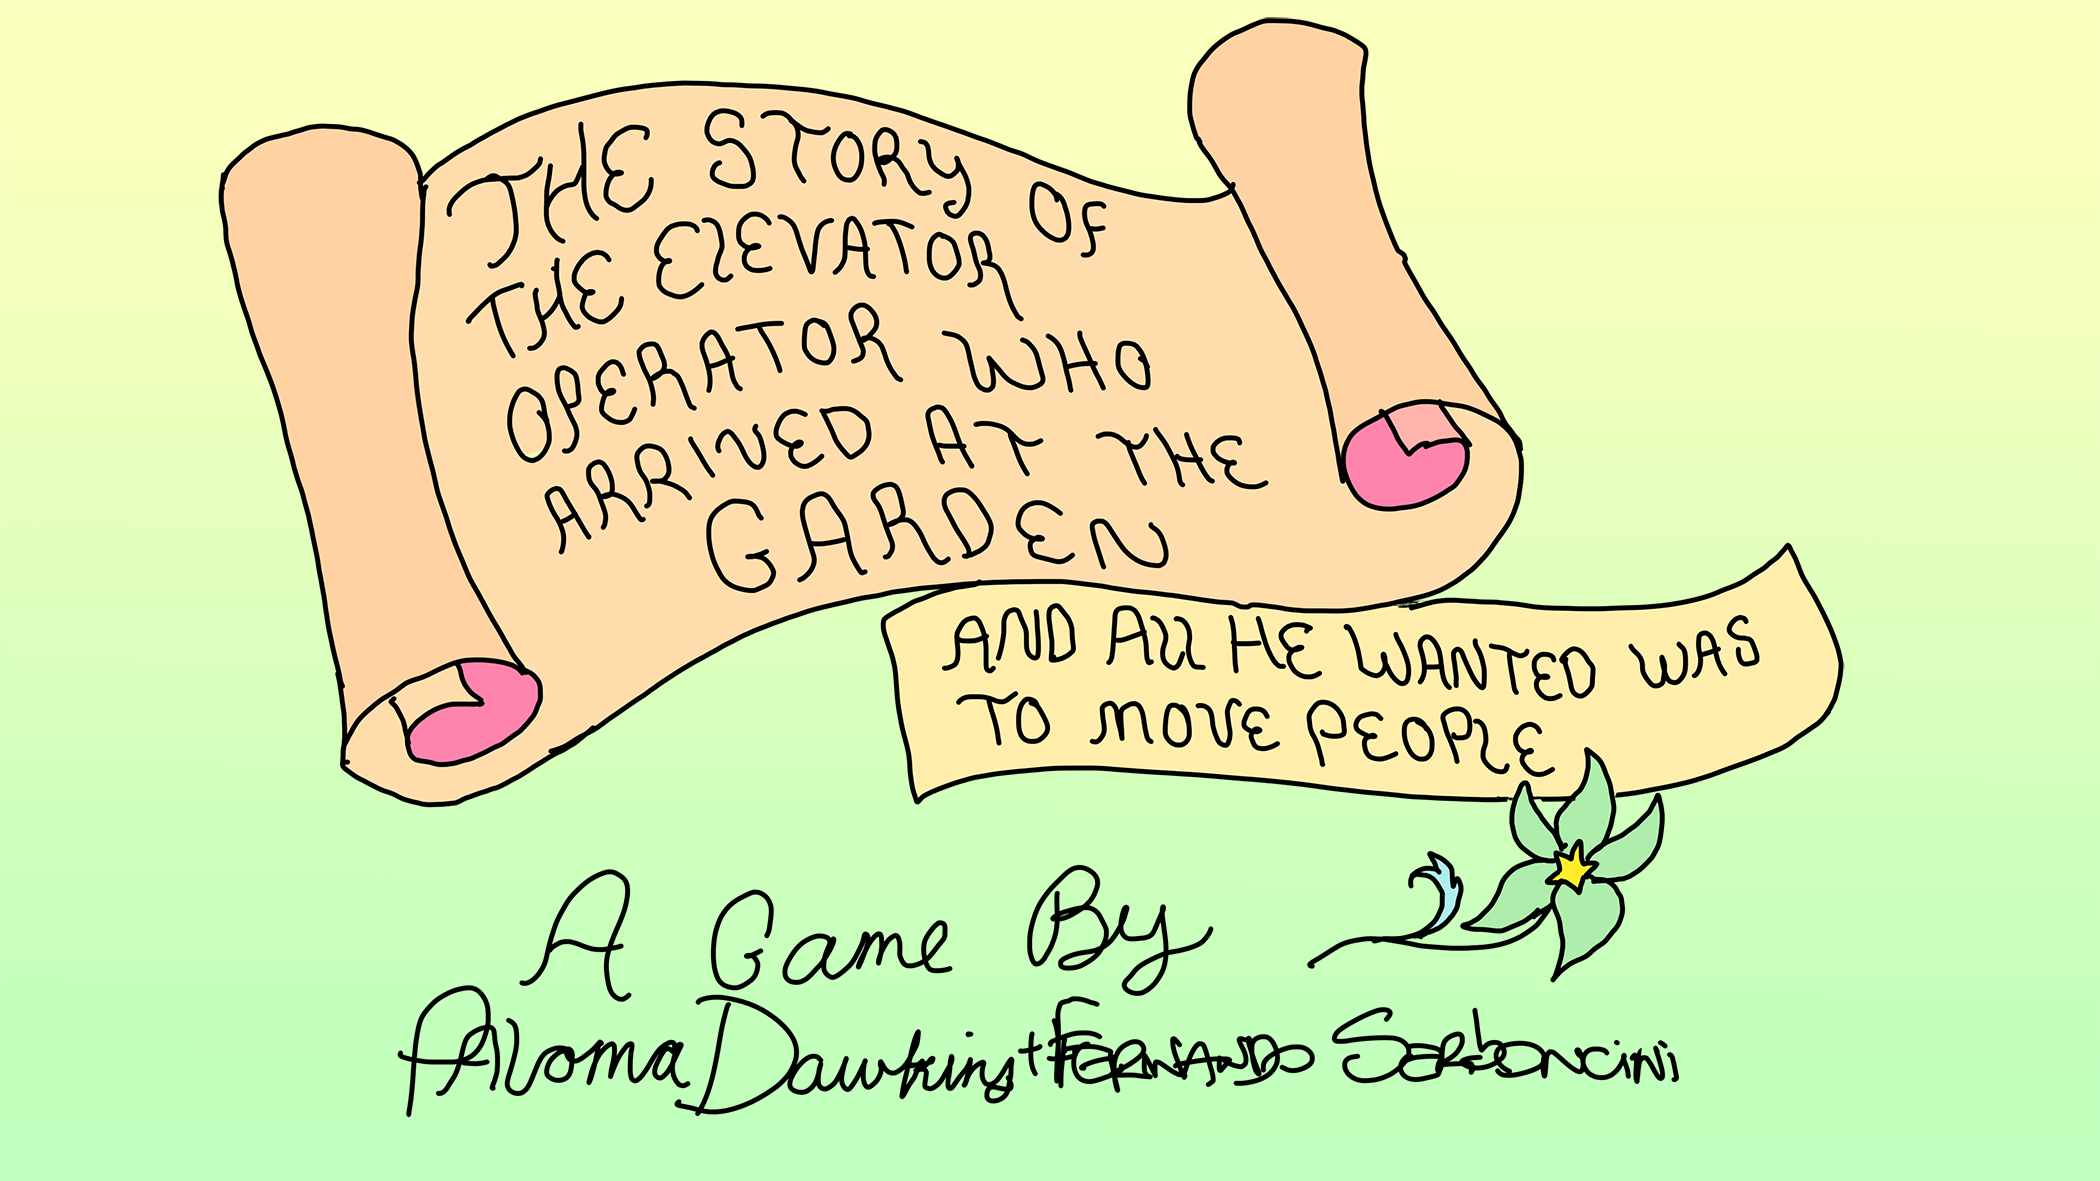 The Story of the Elevator Operator who arrived at the Garden